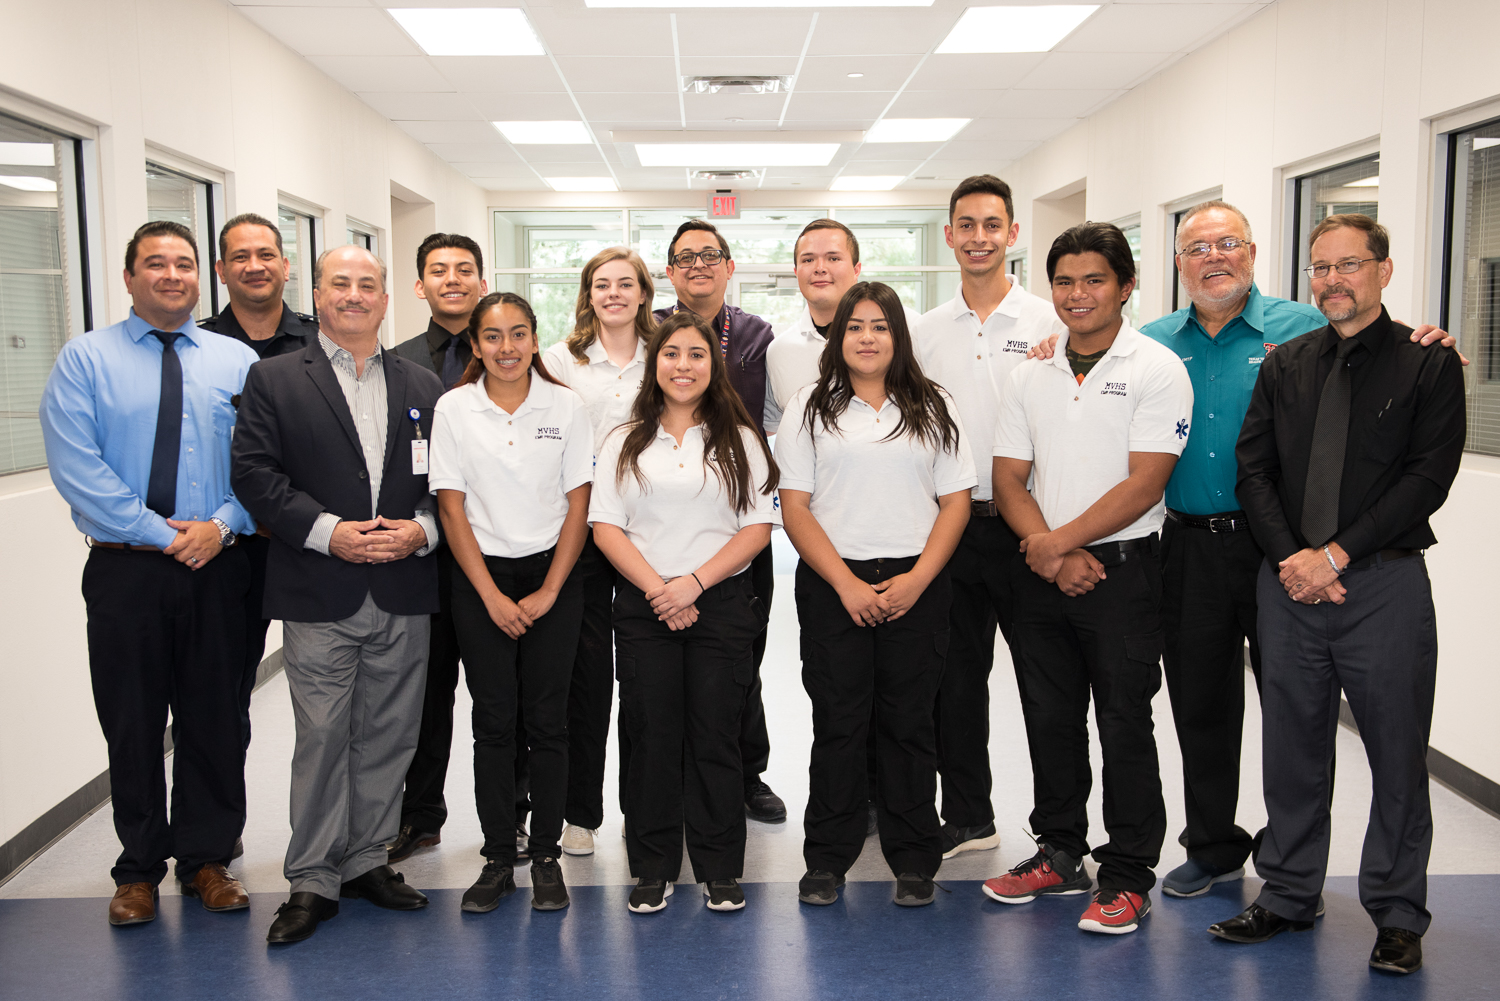 TTUHSC El Paso EMR Classes Turn Local High Schoolers into Heroes